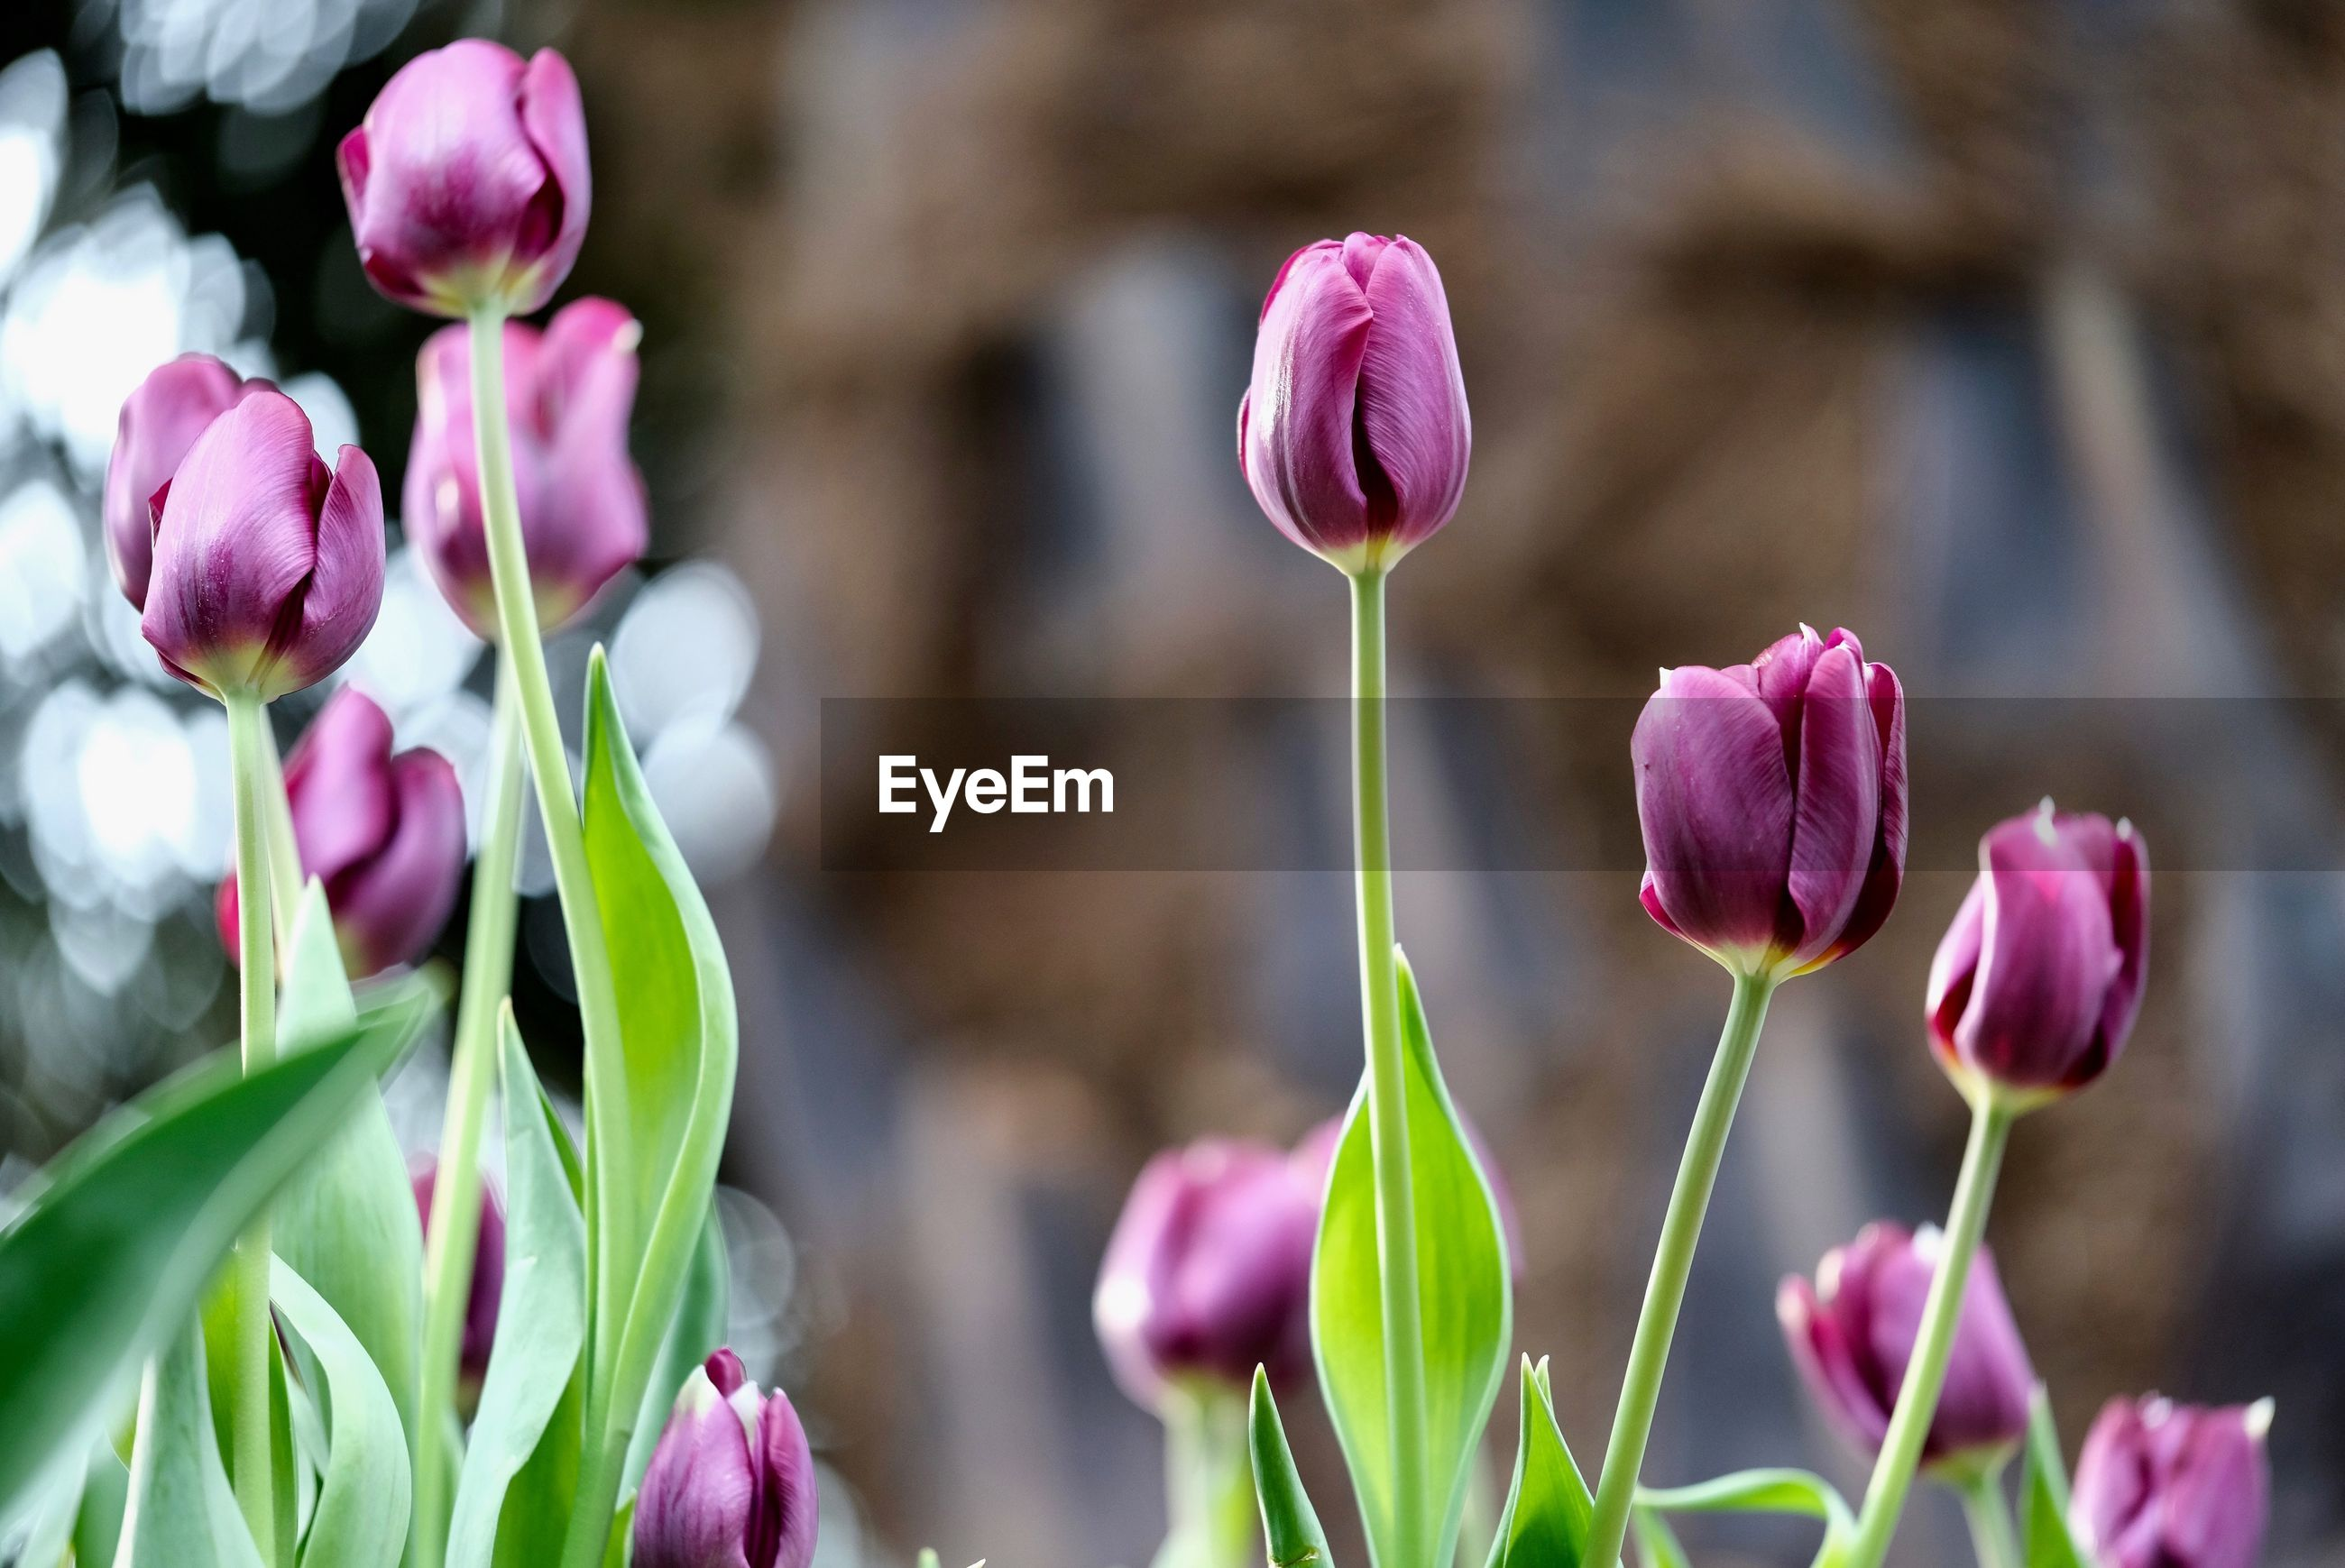 CLOSE-UP OF PINK TULIPS ON PLANT